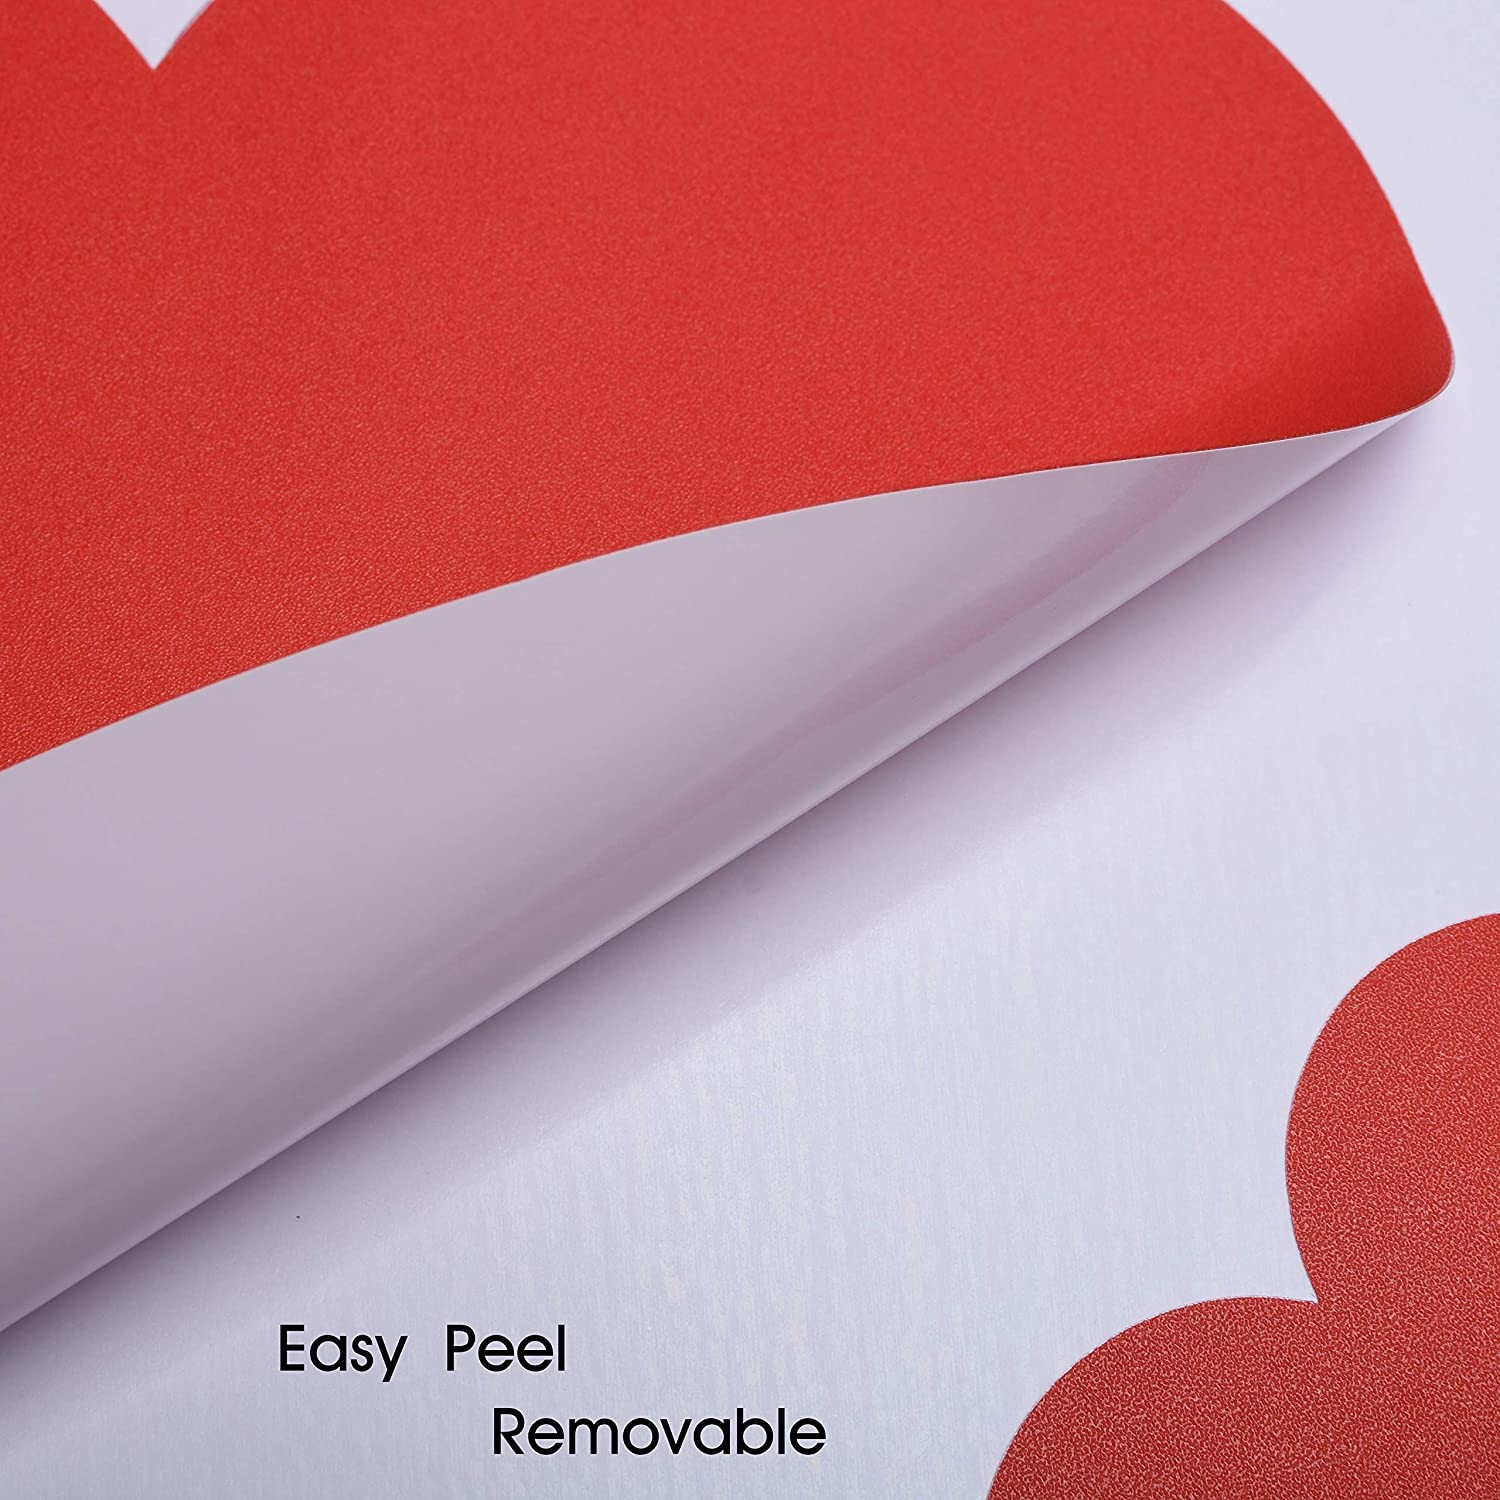 32 Pcs MerryJoyParty Valentines Day Heart Decorations Removable Heart Decals for Floor Wall Windows 3-12